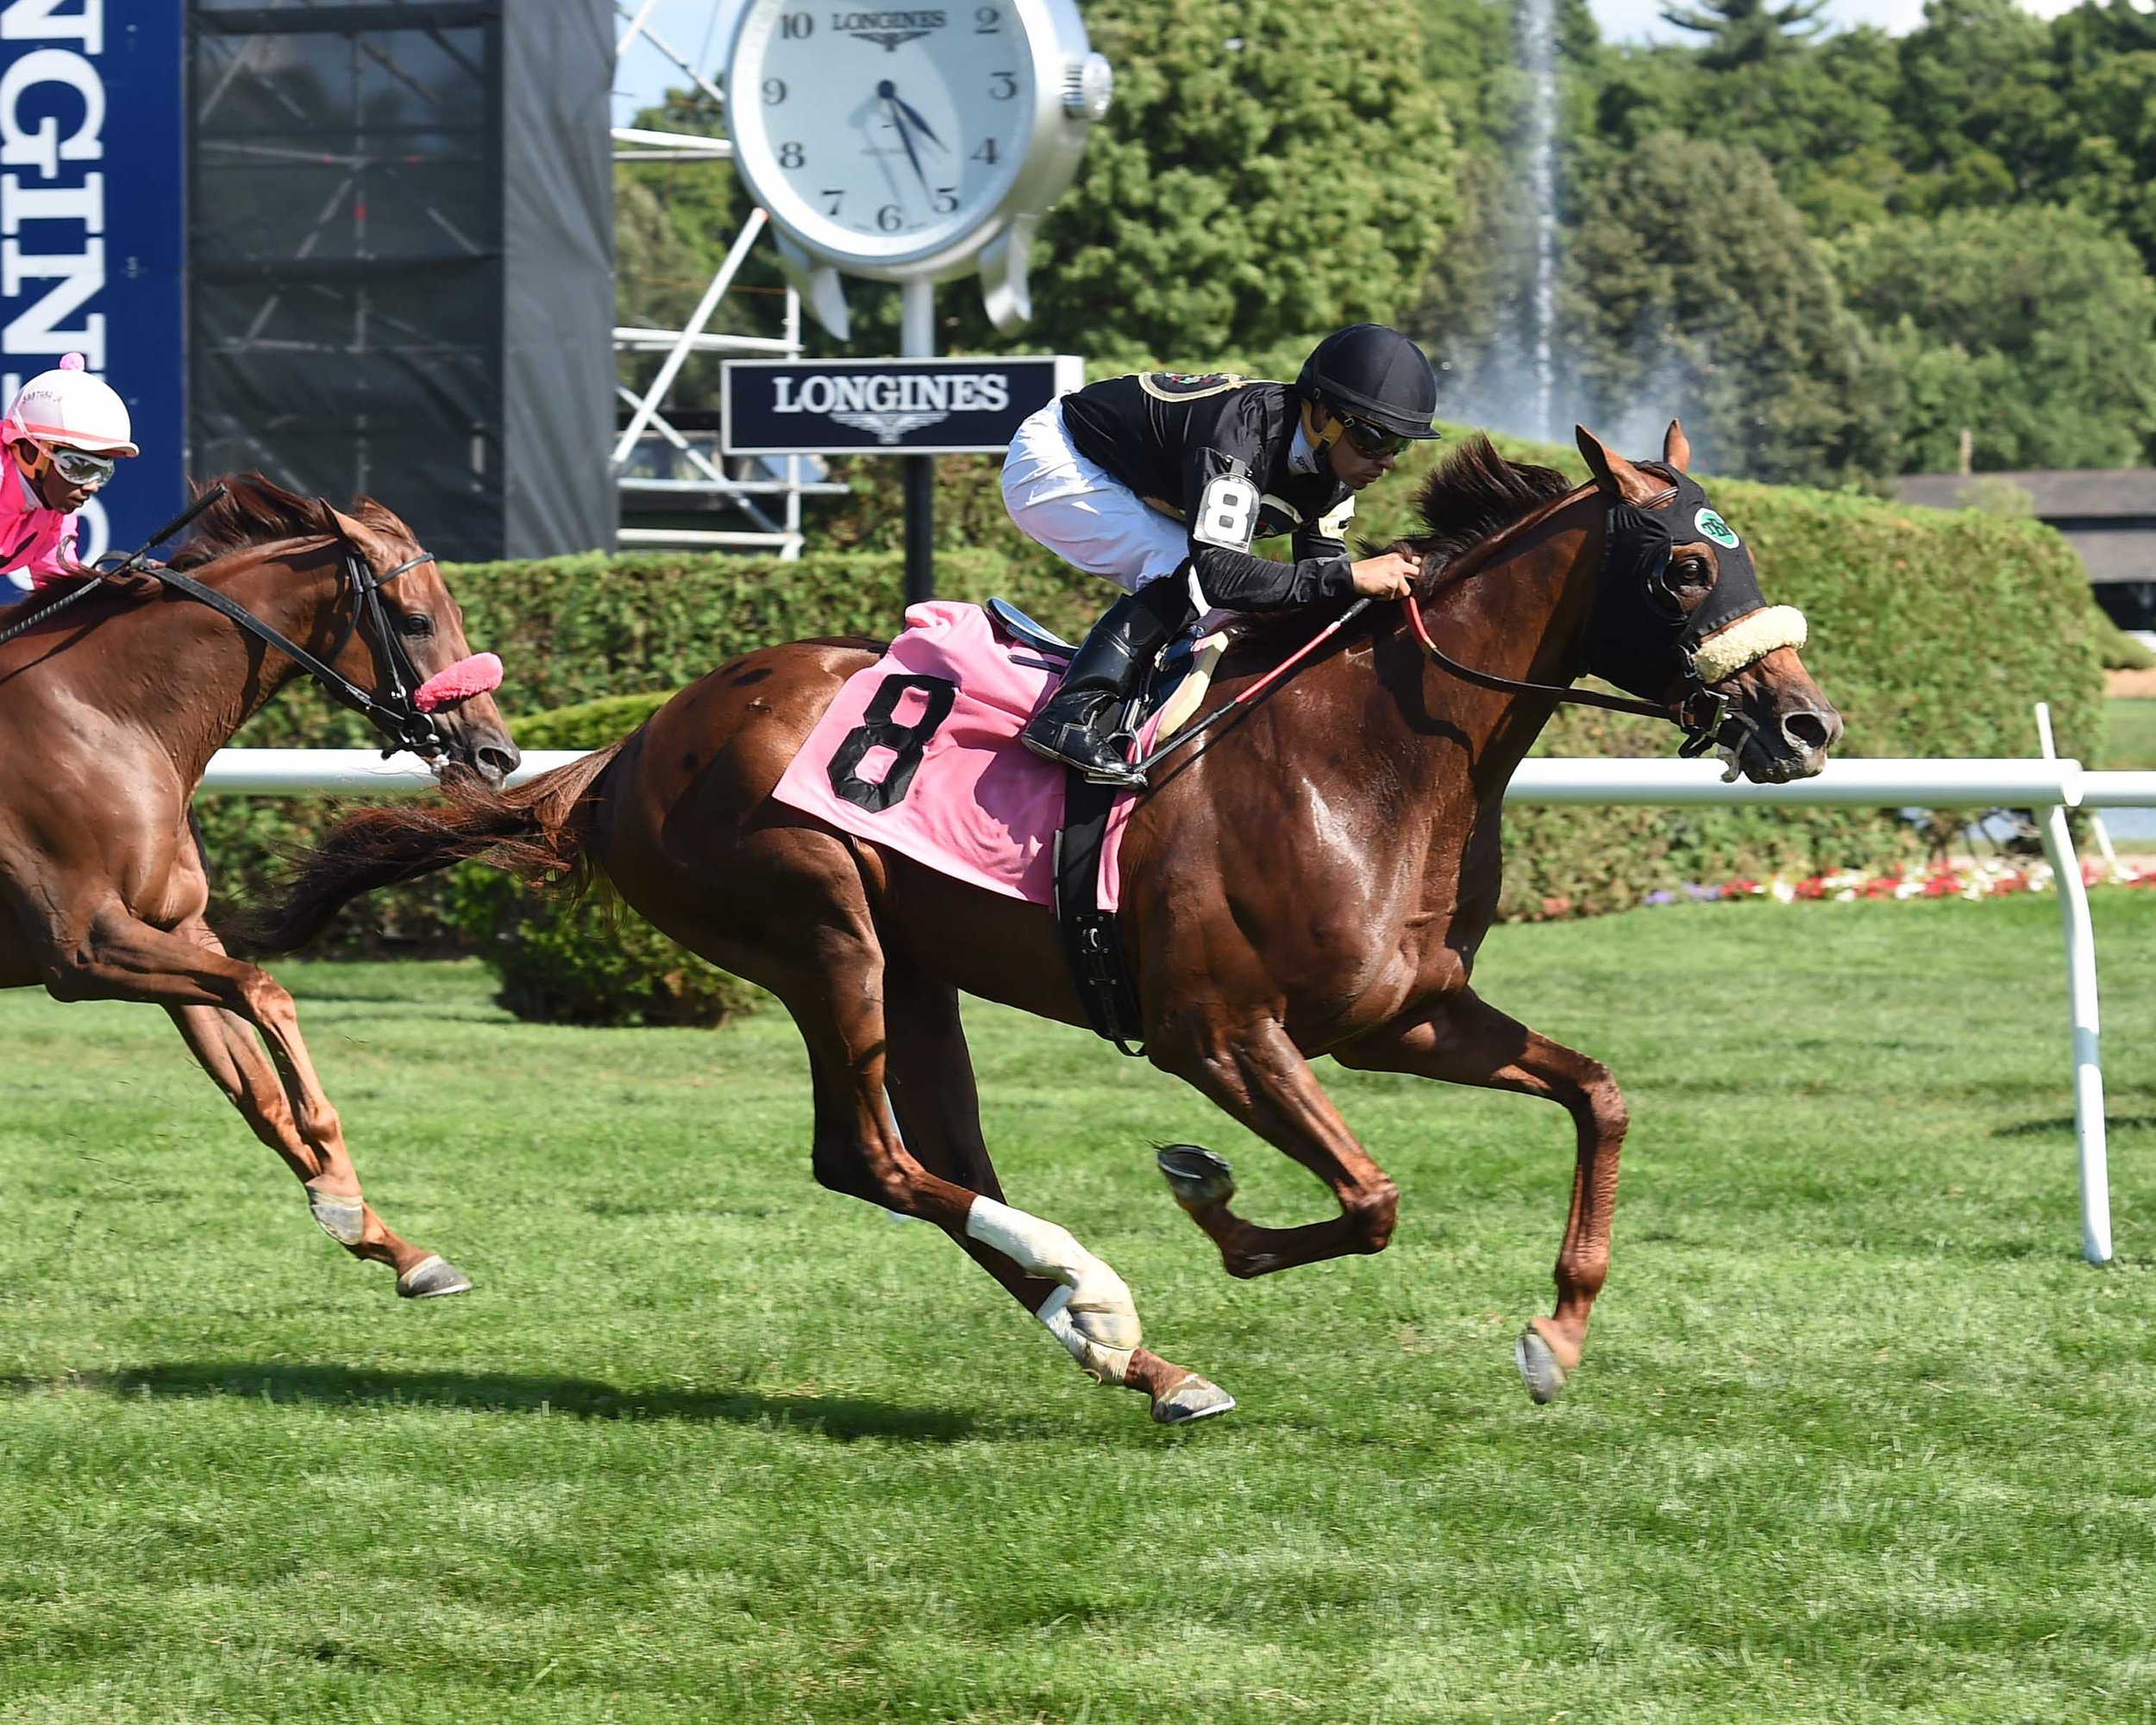 Cliff's of dover - win at Saratoga (August 2016)